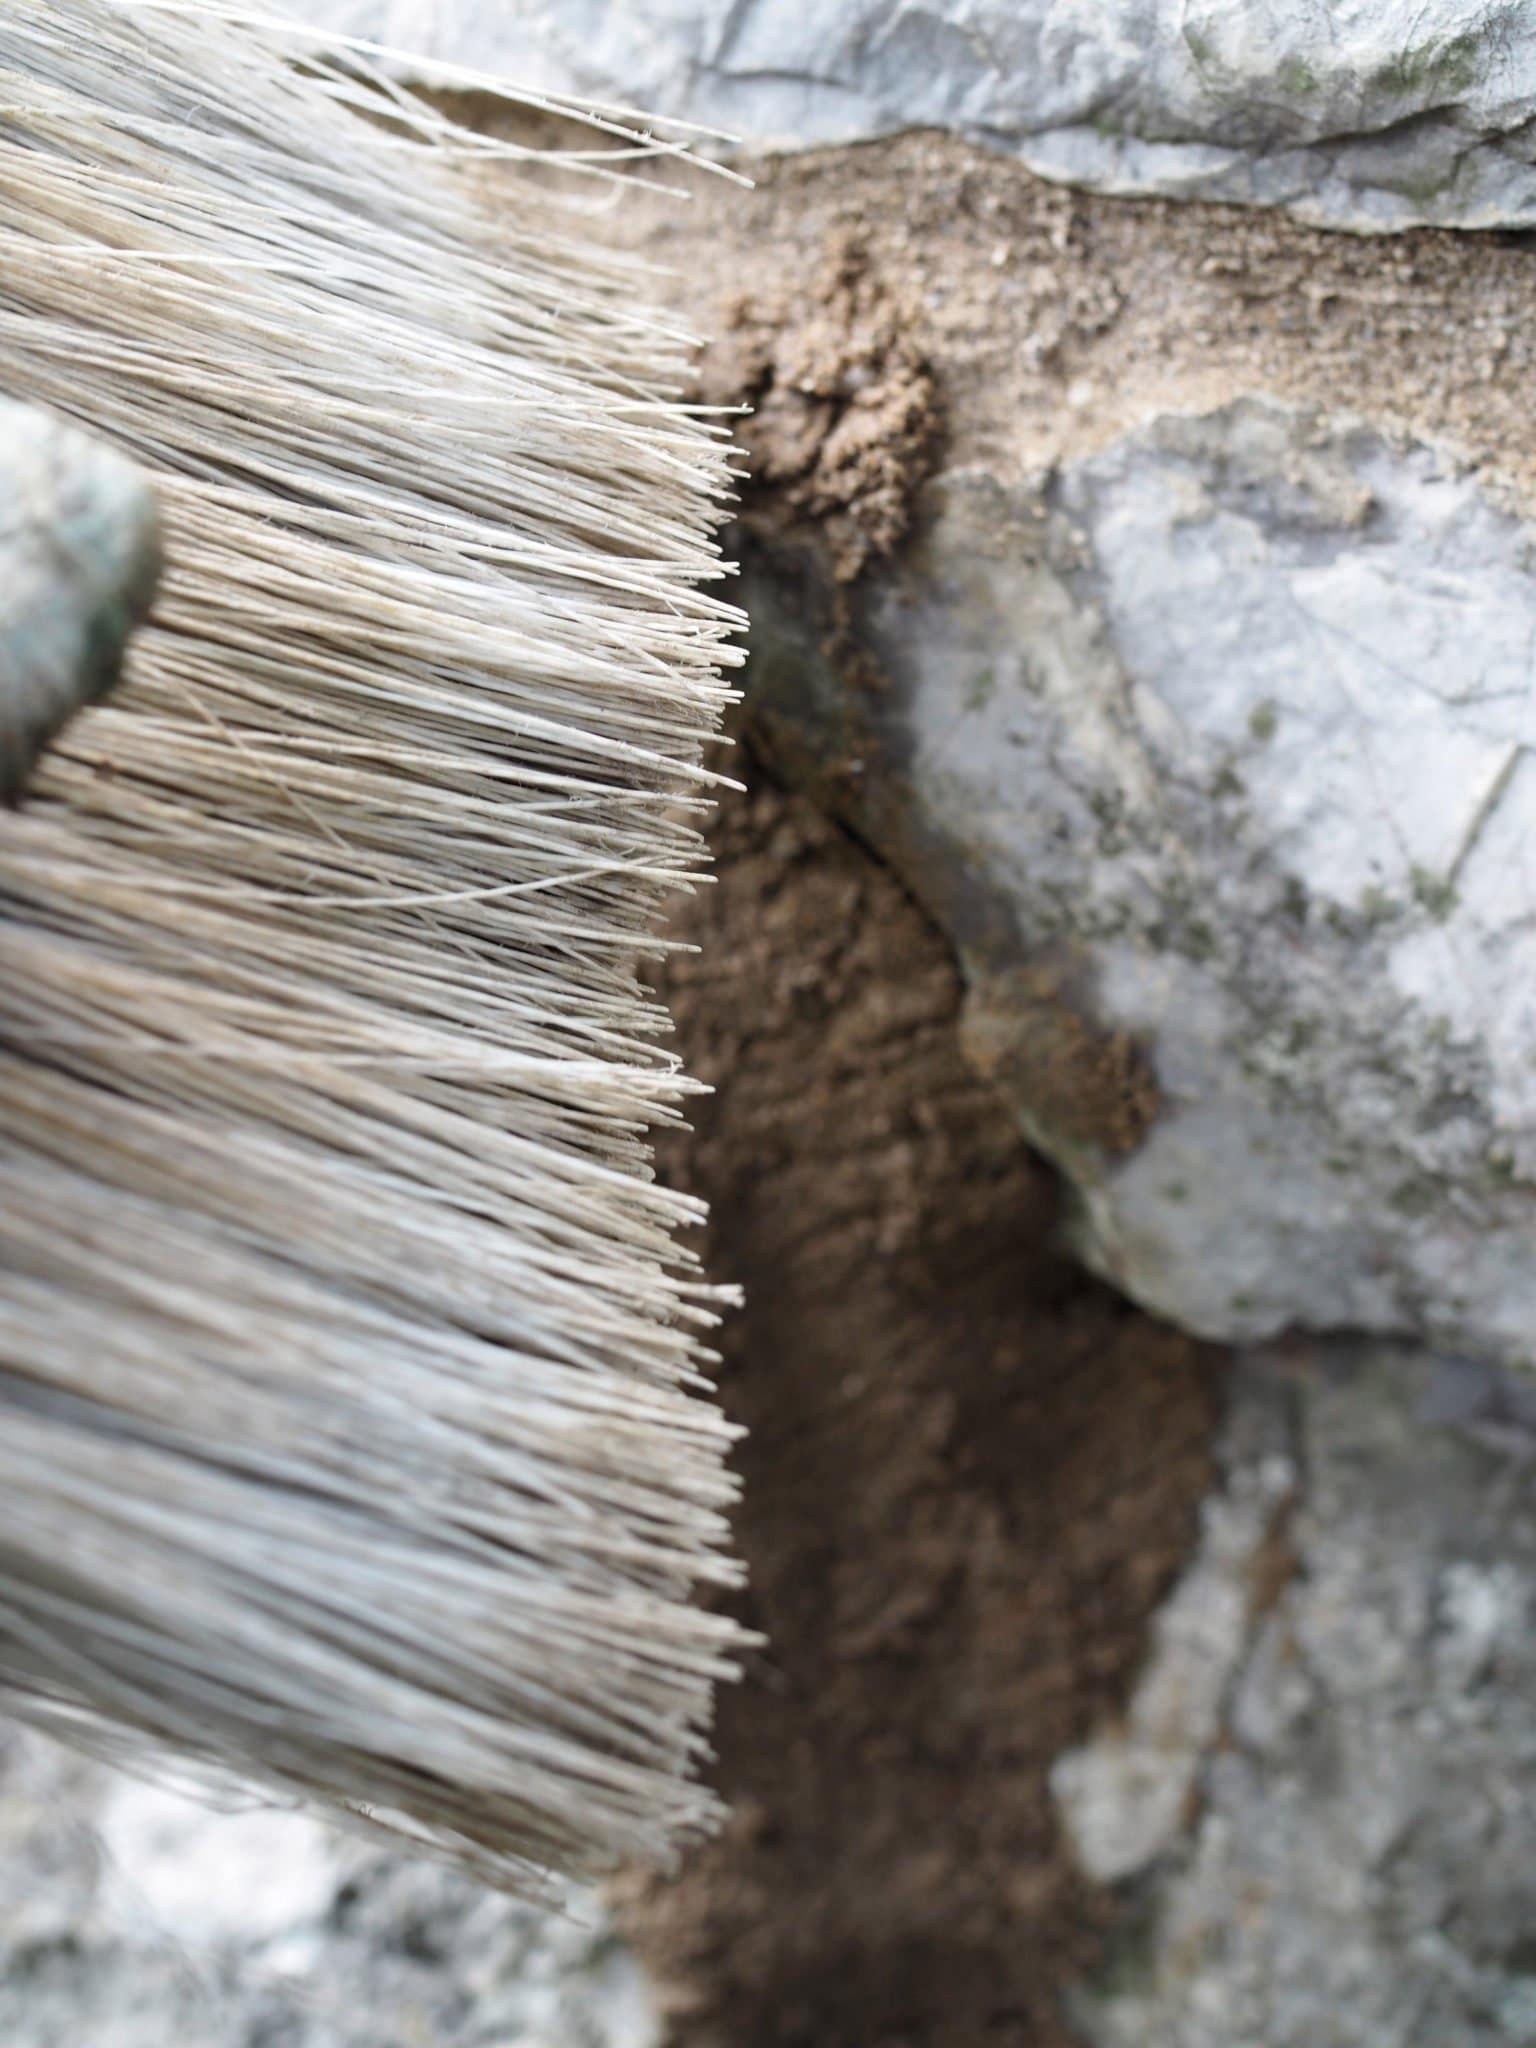 Brushing away excess mortar when repointing a stone wall